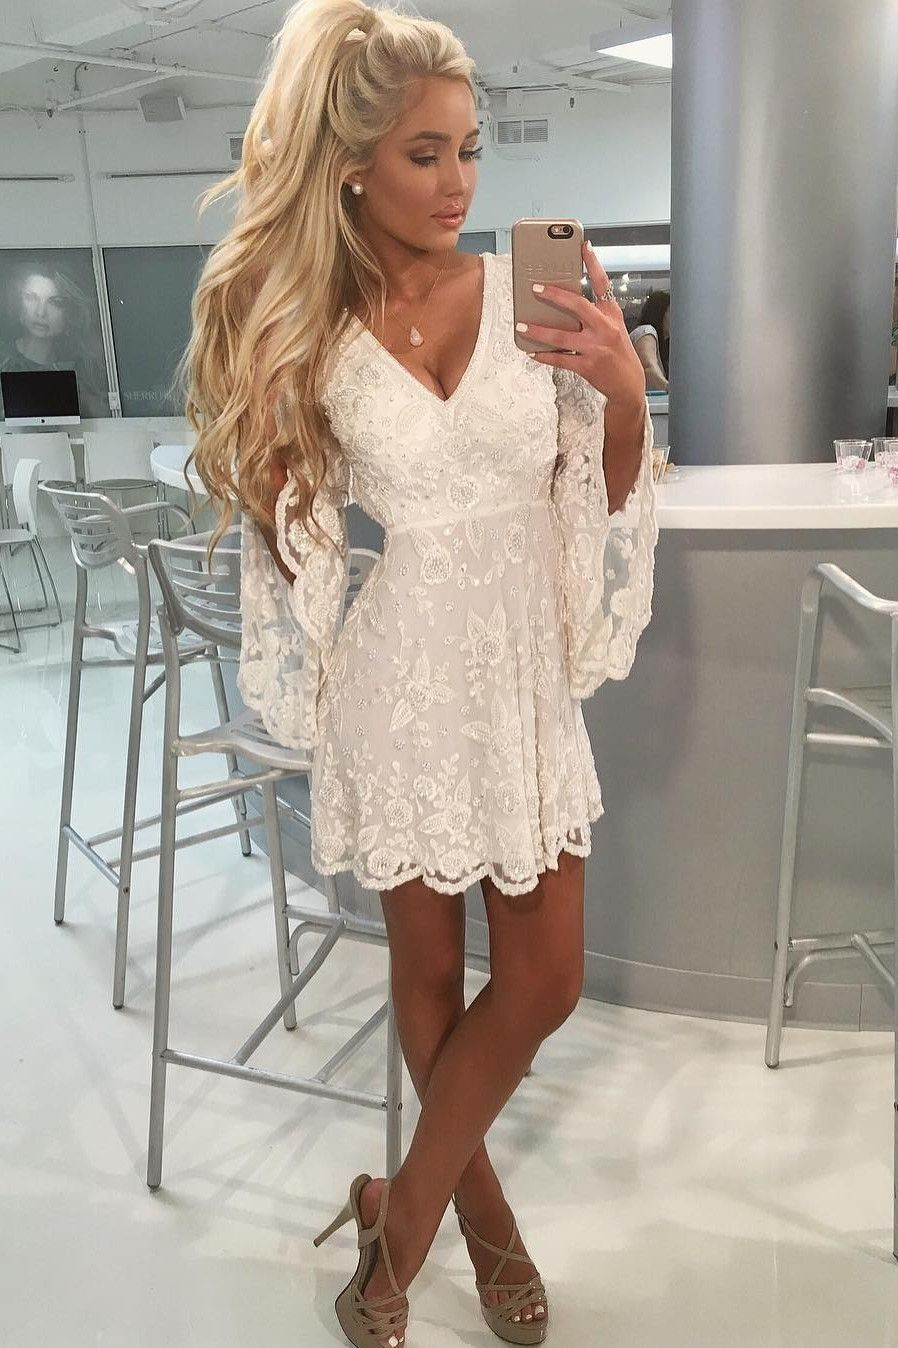 Elegant White V Neck Homecoming Dresses With Flare Sleeves Simple Short Prom Party Gowns Cocktail Dress Lace Lace Homecoming Dresses White Homecoming Dresses [ 1348 x 898 Pixel ]